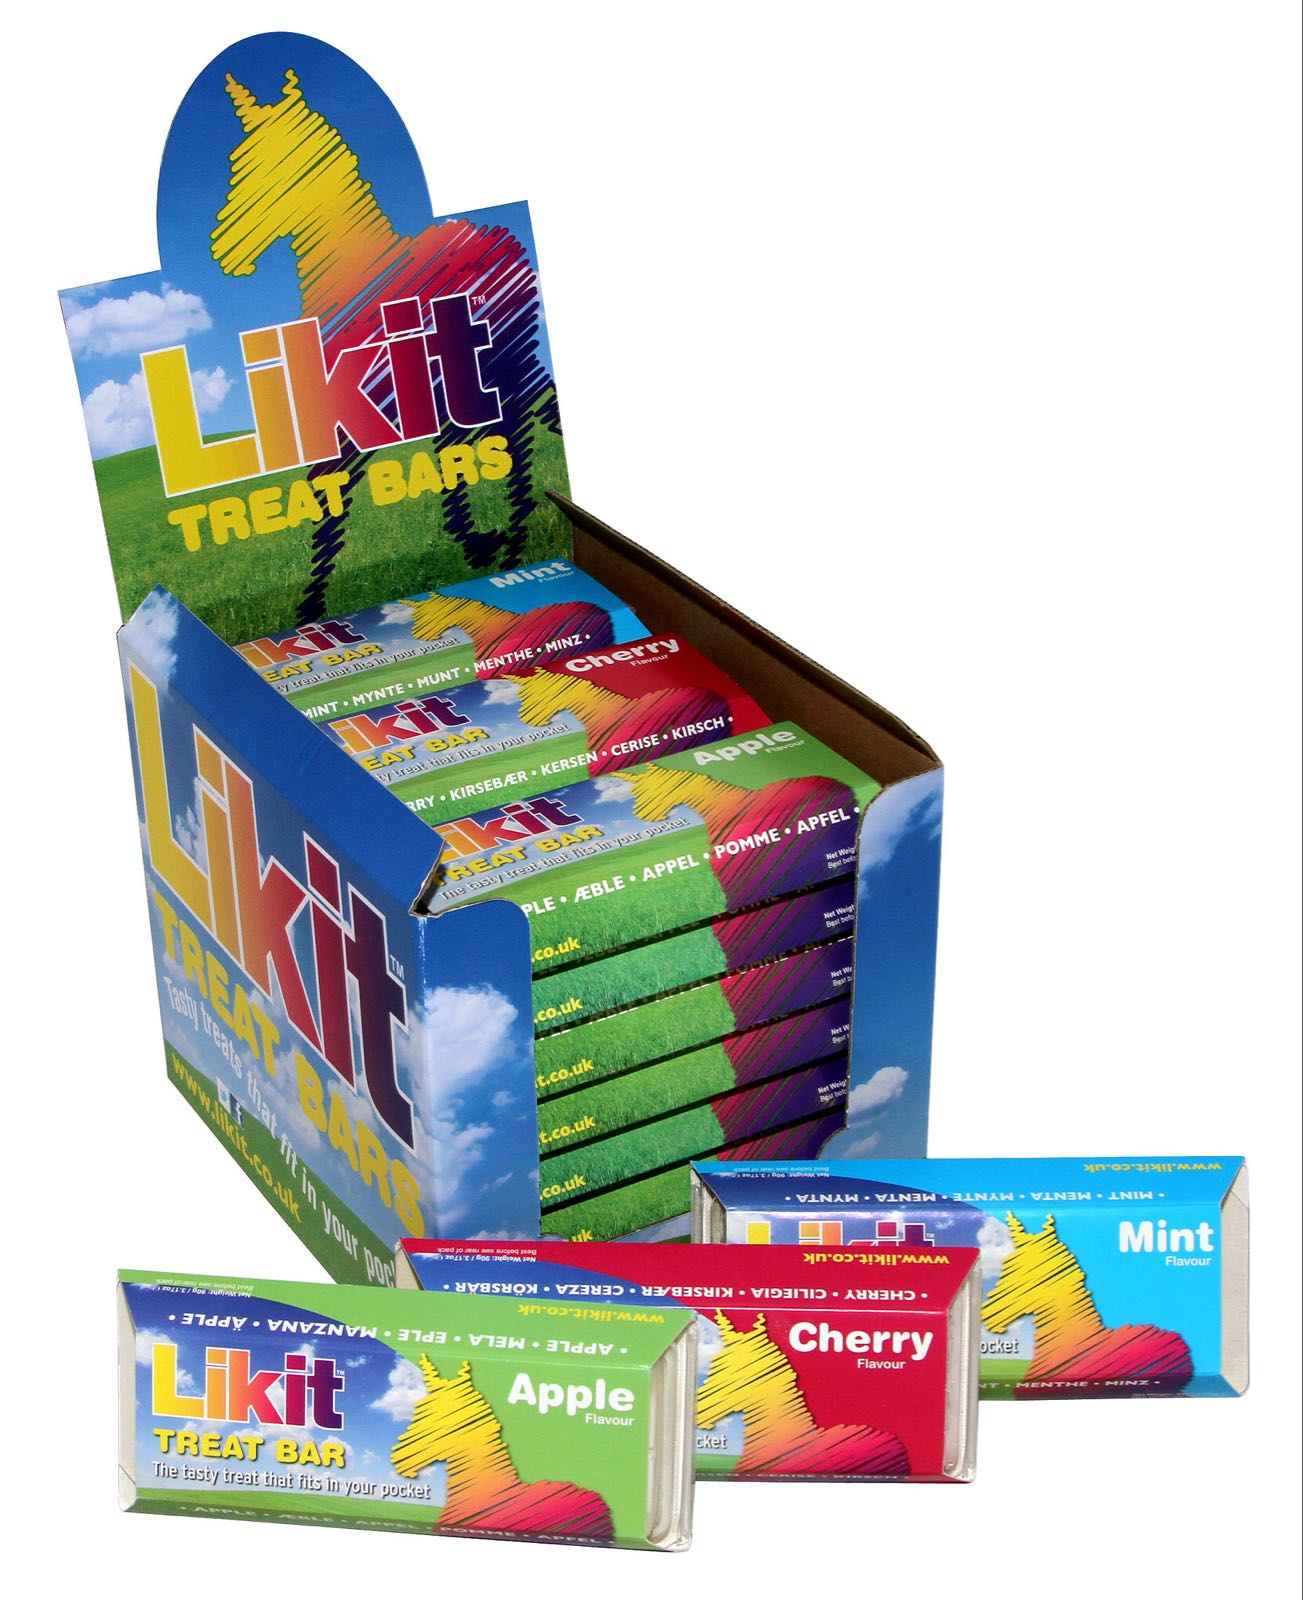 Likit Treat bar 4 pk (Mint/apple/carrot/cherry)